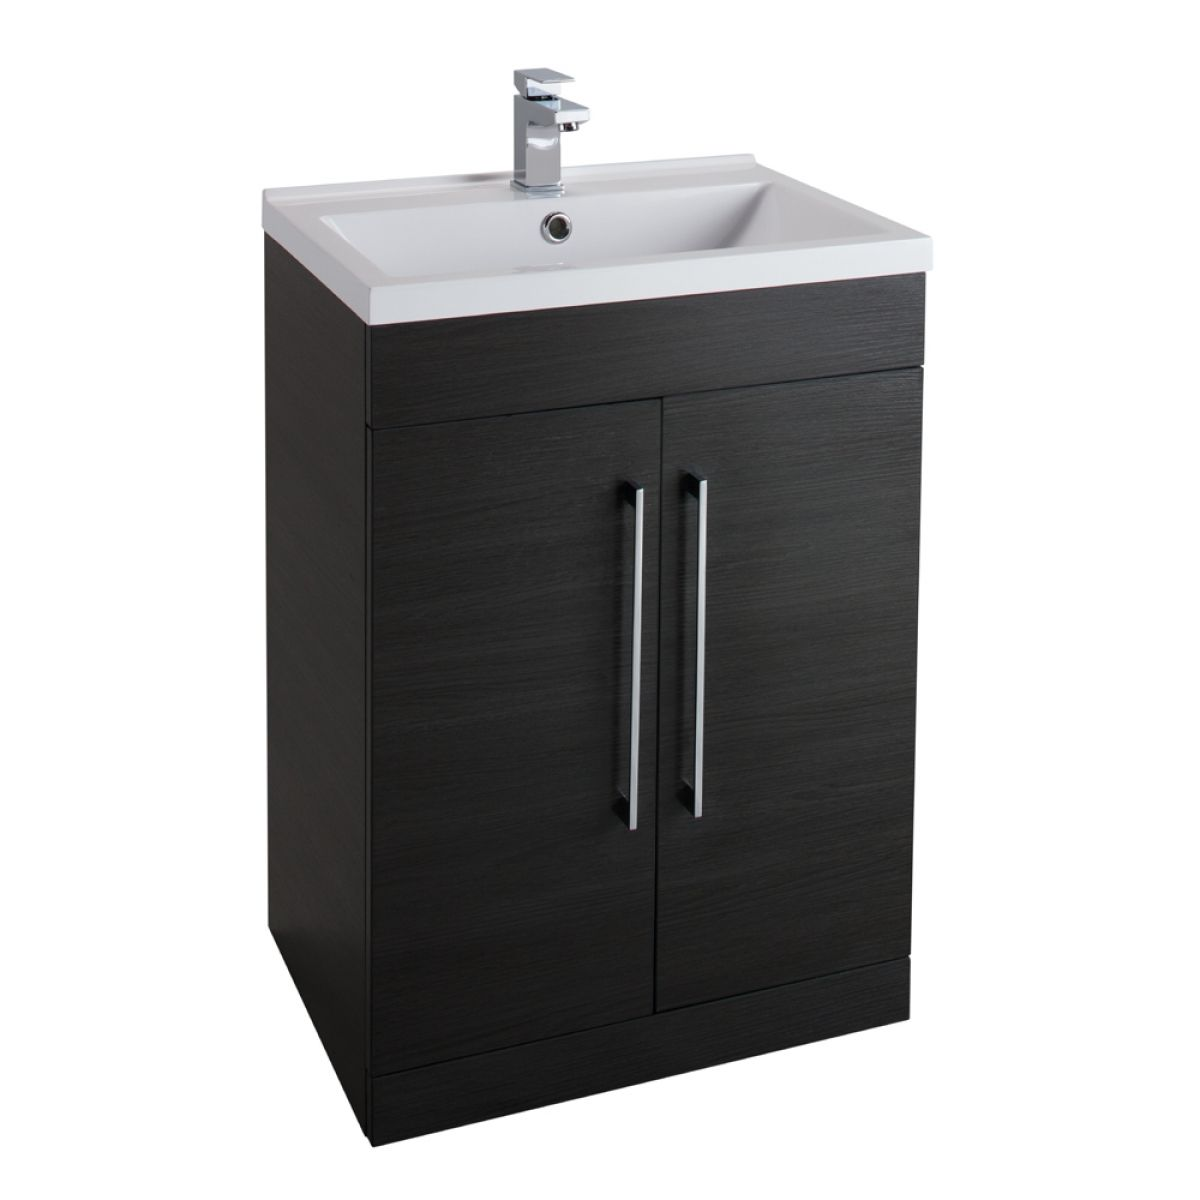 Cassellie Idon Black Vanity Unit with Basin 600mm